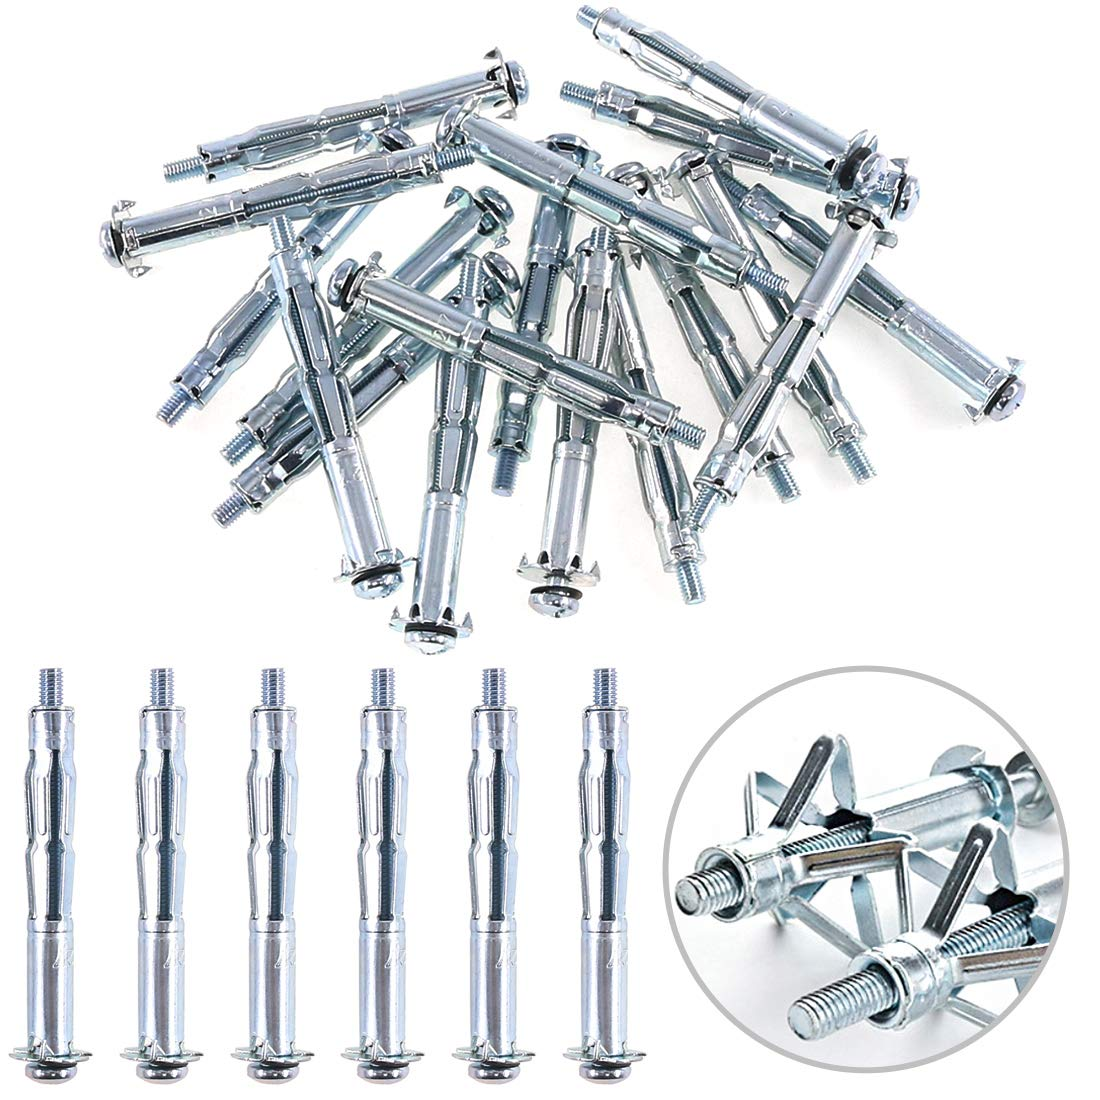 Glarks 30Pcs 5x65MM Heavy Duty Zinc Plated Steel Molly Bolt Hollow Drive Wall Anchor Screws Set for Drywall, Plaster and Tile (M5x65)